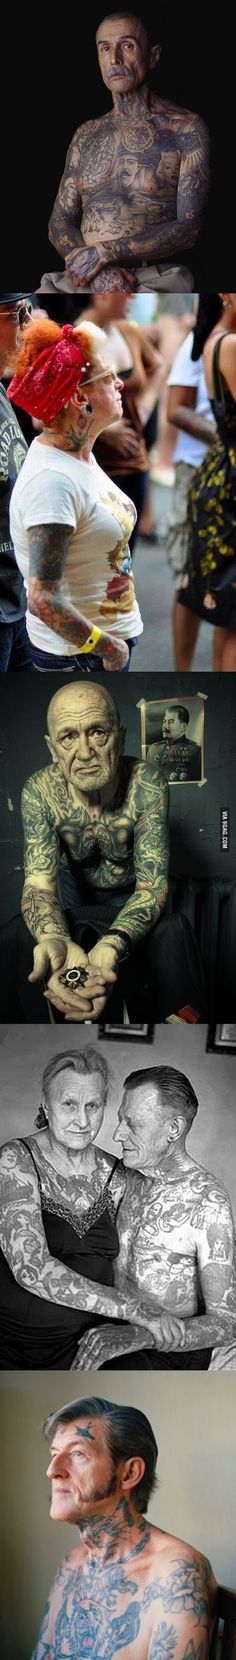 Jay tattoos and body art and muscle on pinterest for Tattoos on old saggy skin